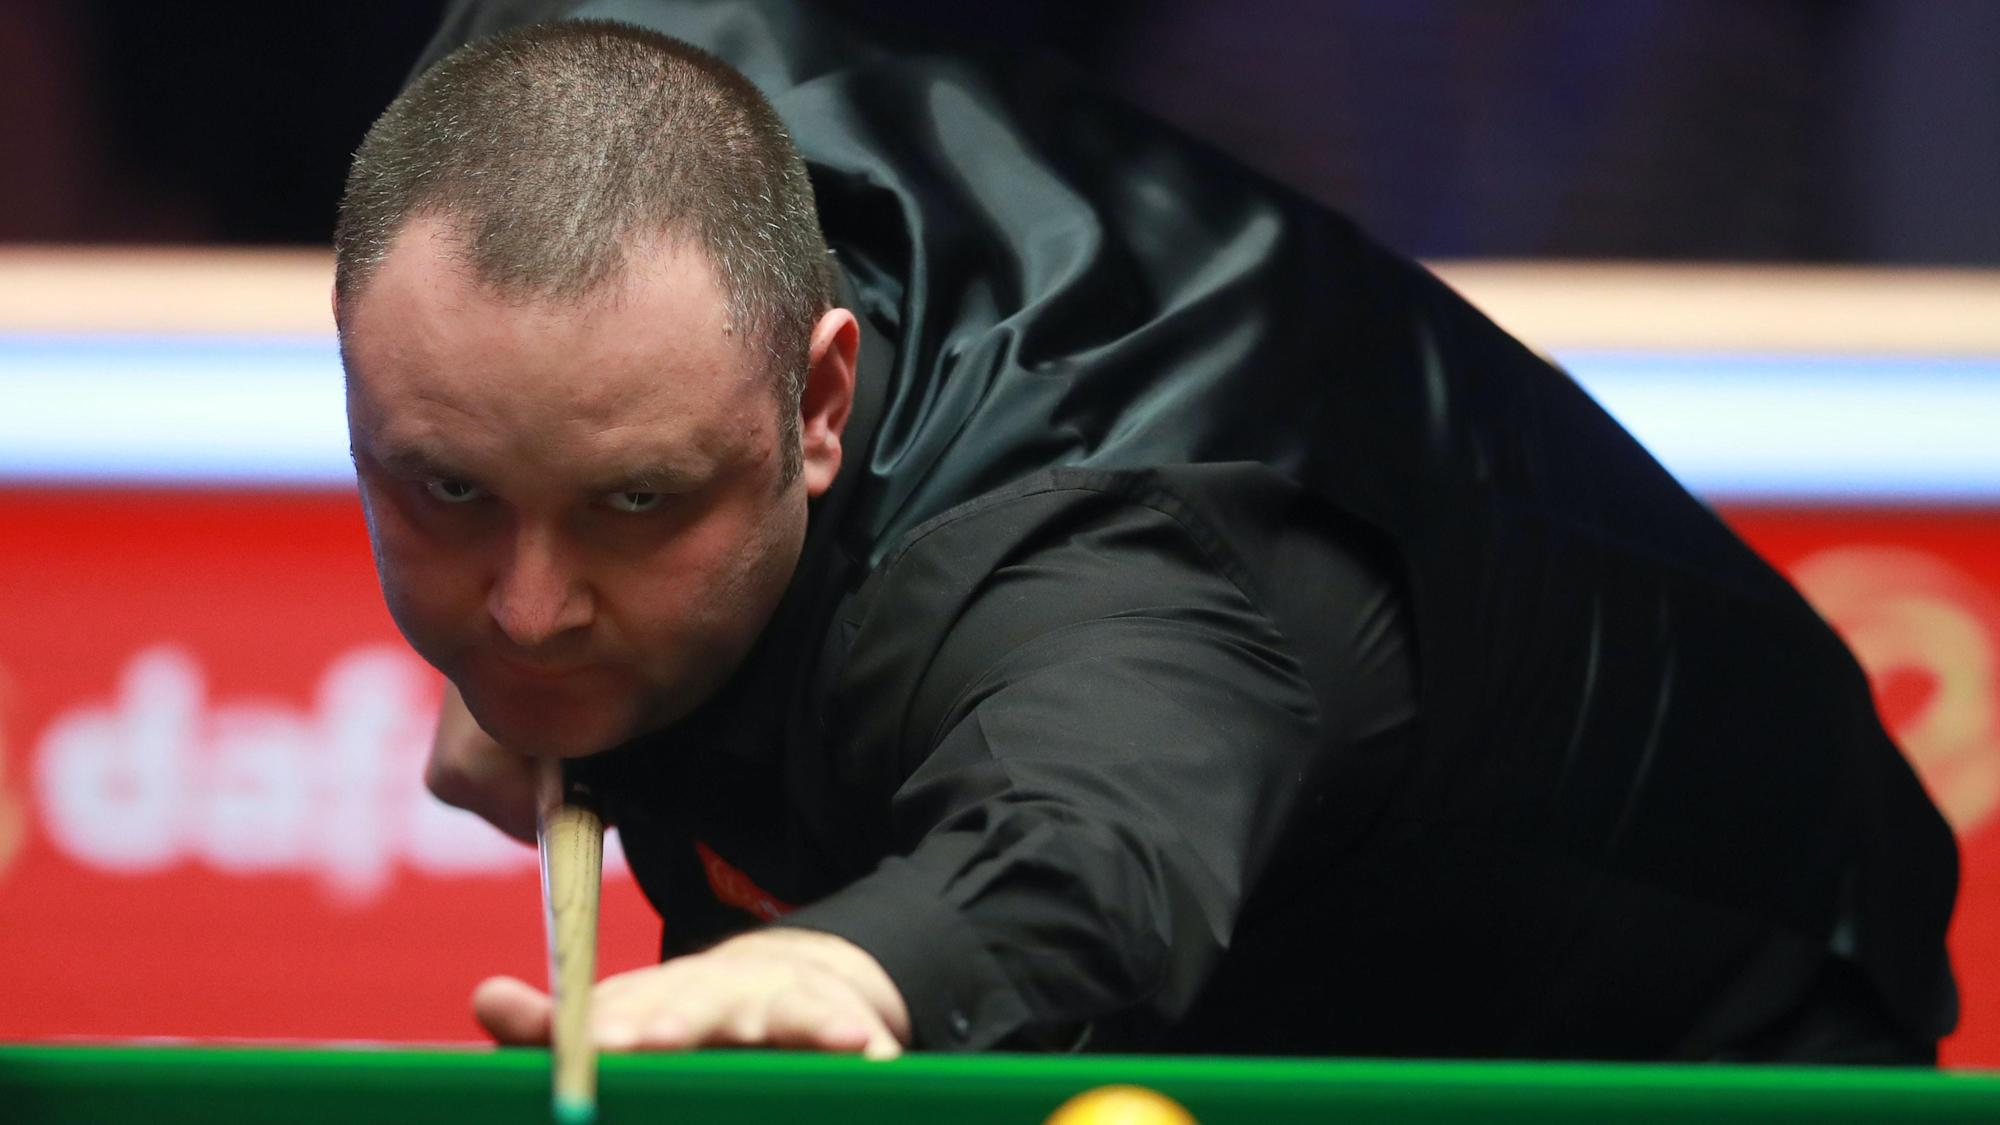 Stephen Maguire progresses as UK Championship briefly delayed due to Covid tests